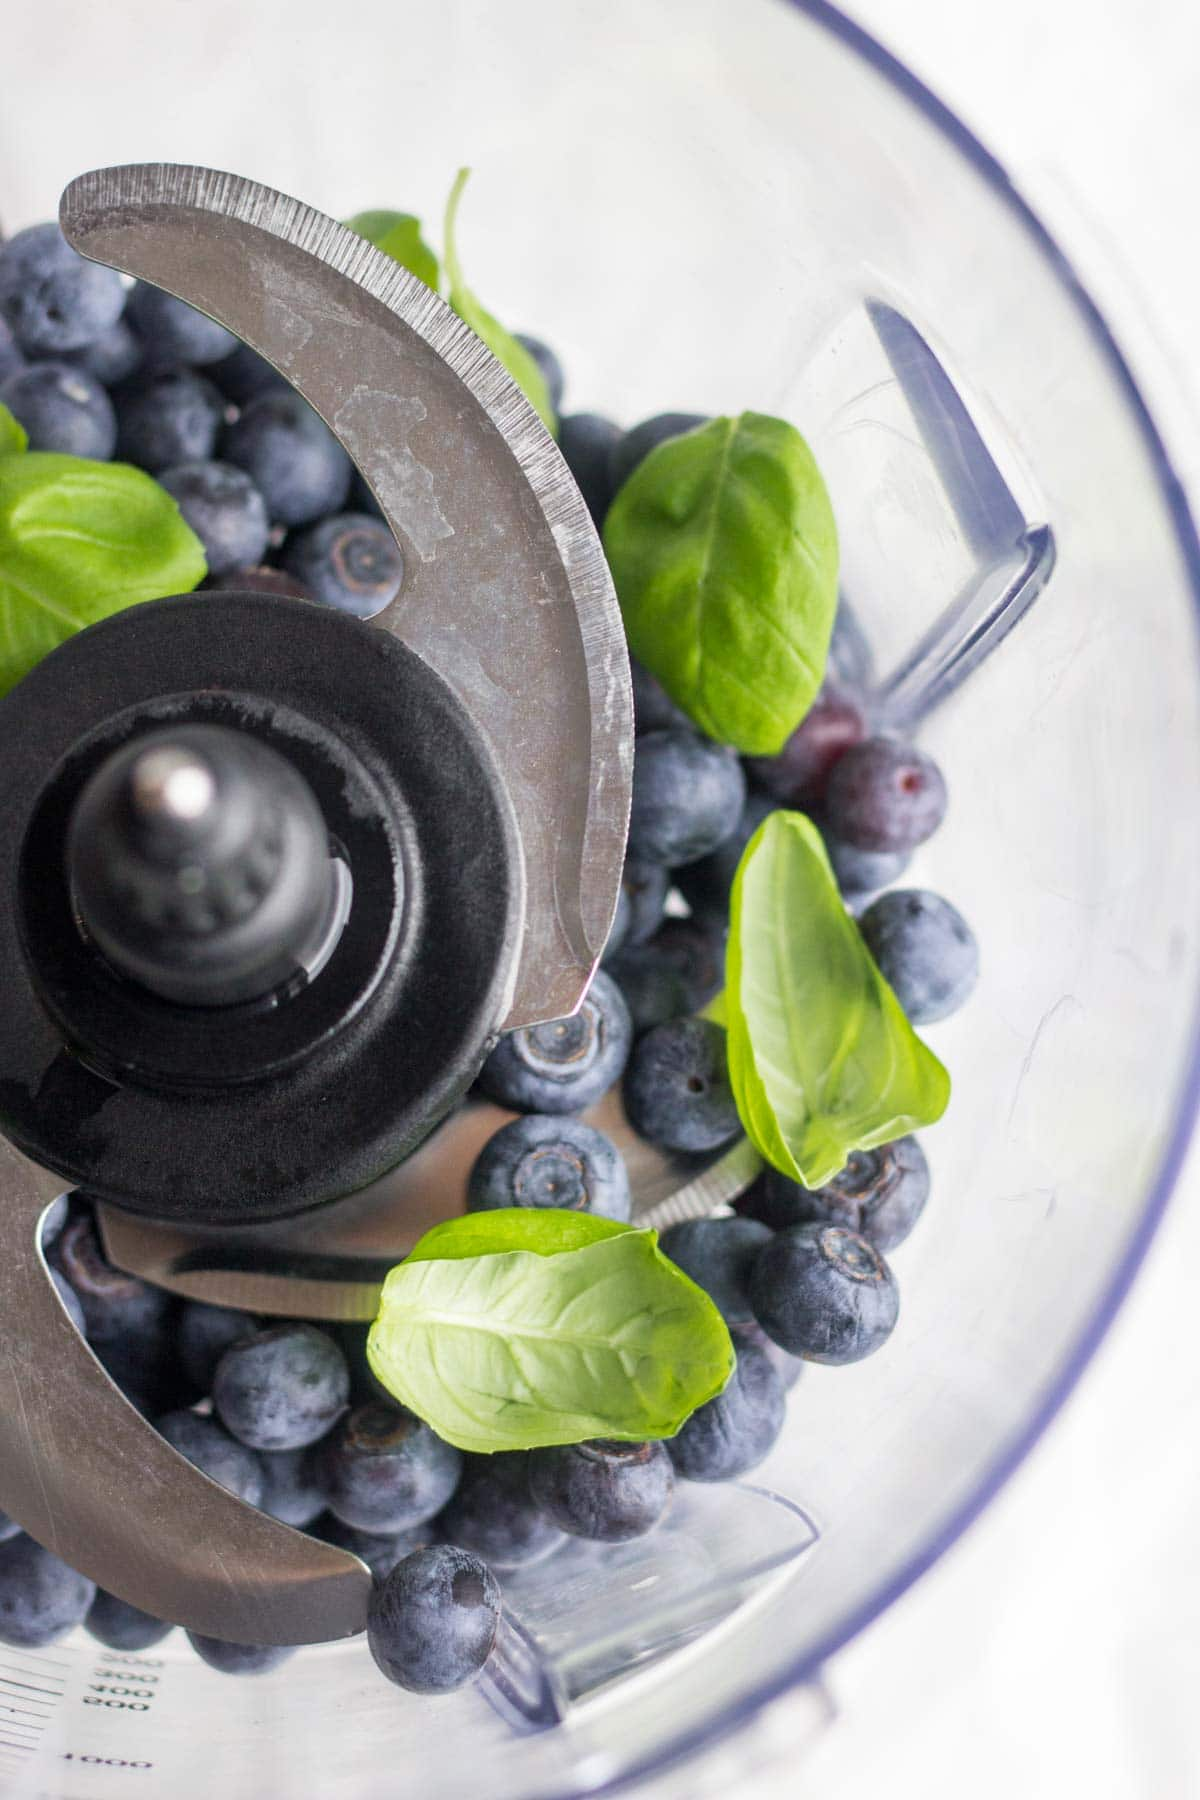 Healthy, 3-ingredient blueberry basil popsicles are the perfect easy and healthy treat! They take less than 15 minutes to make and freeze in a couple hours. Your family and friends will be amazed that they're made with whole foods and taste so delicious and sweet!